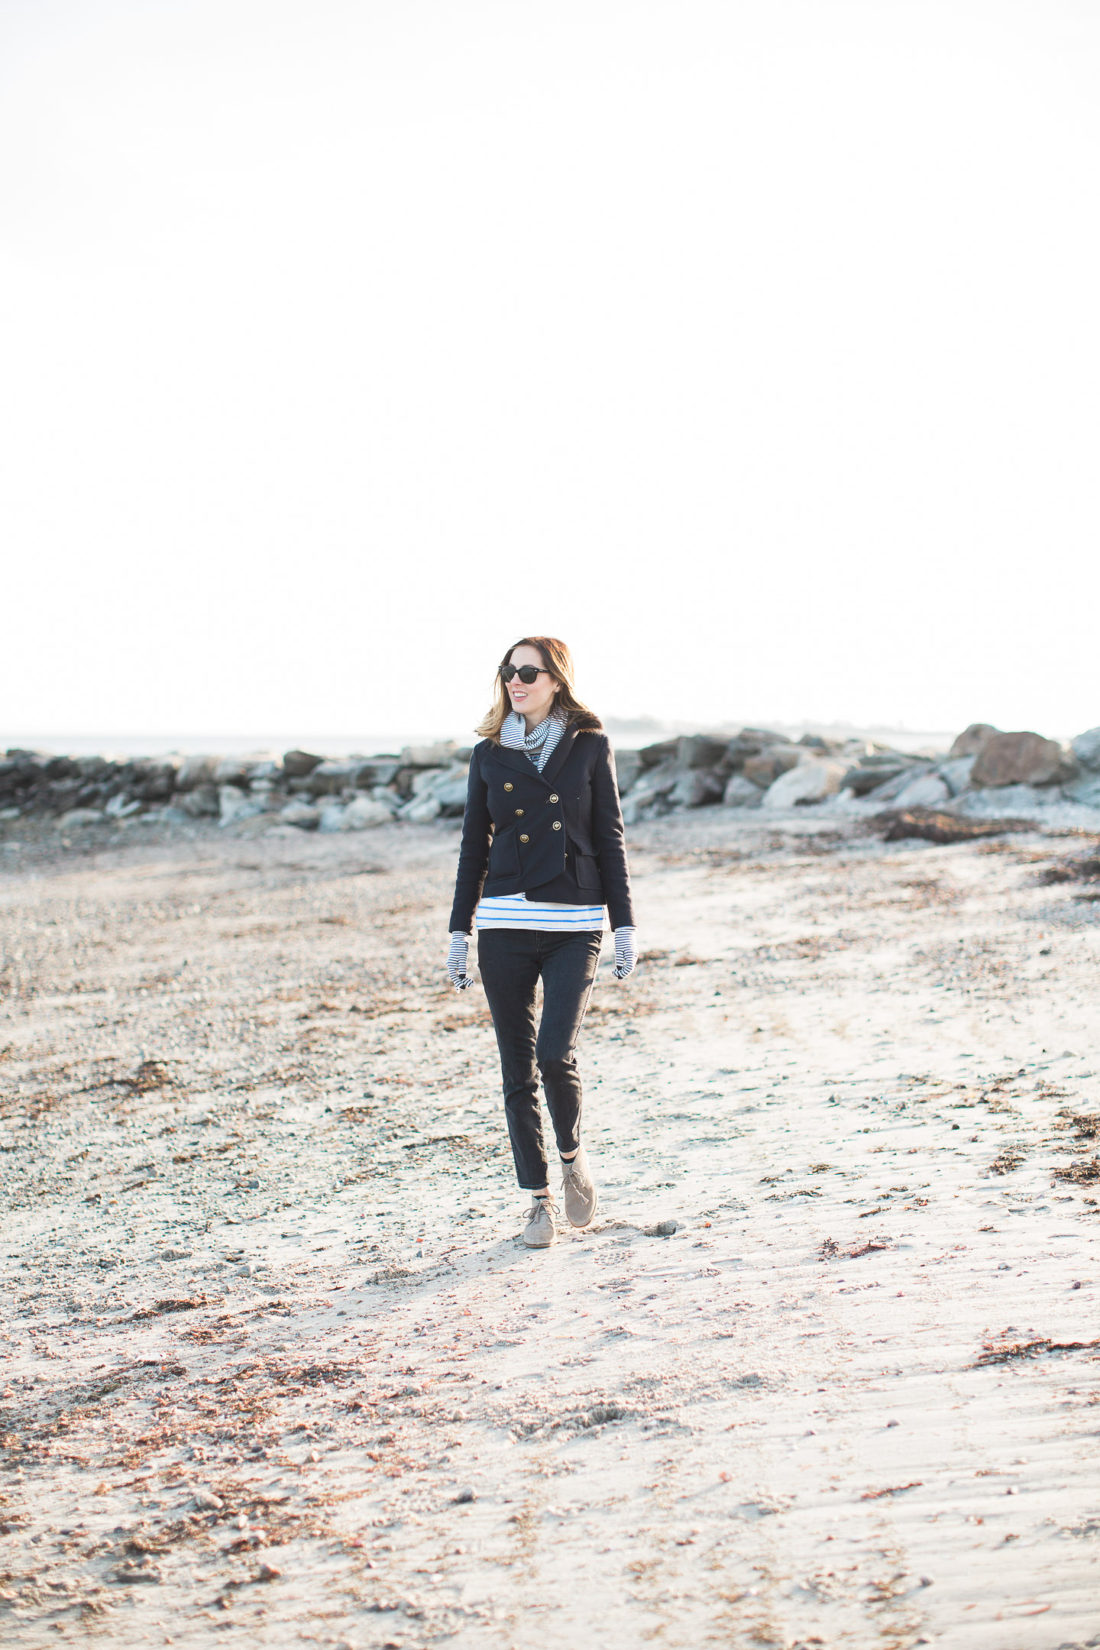 Eva Amurri Martino walks along the sand in the chilly weather at Compo Beach in Connecticut